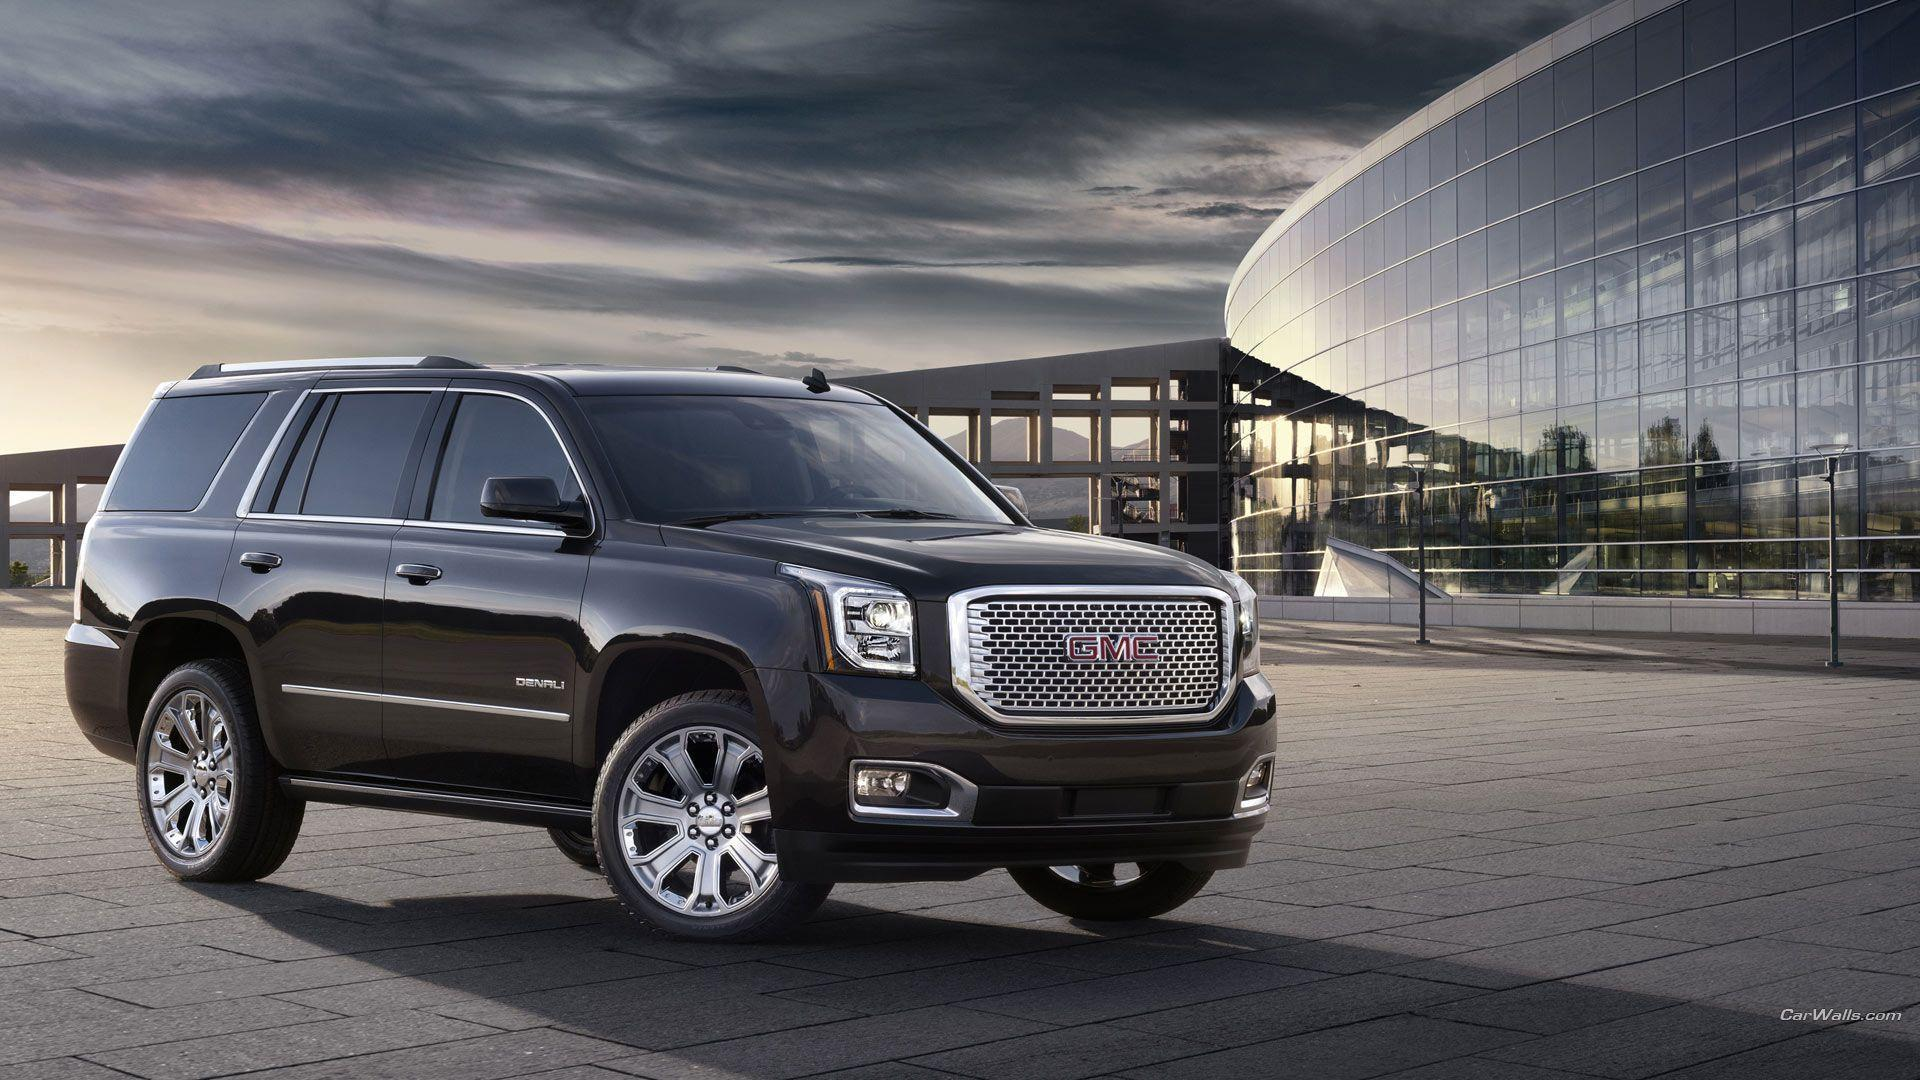 2015 GMC Yukon XL And Yukon Denali Computer Wallpapers, Desktop